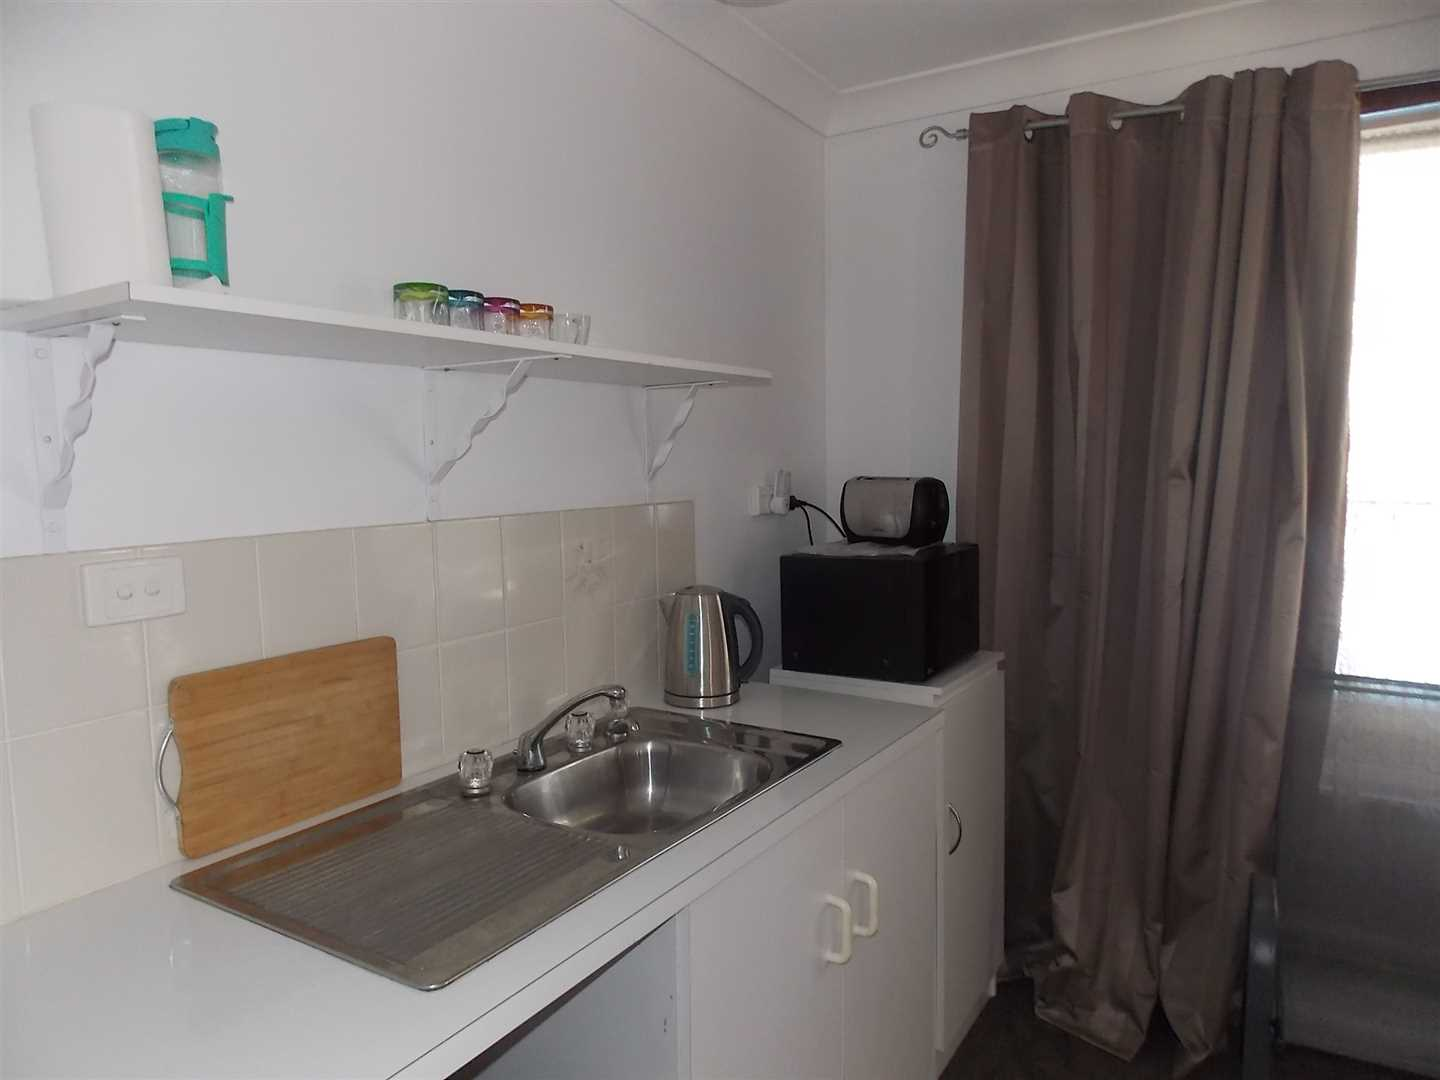 Kitchenette combined with kitchen and bedroom area